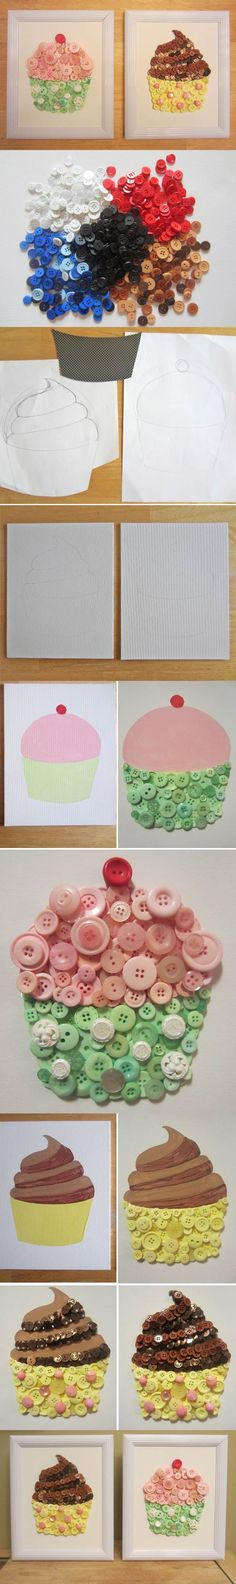 DIY Cupcake Button Crafts | iCreativeIdeas.com LIKE Us on Facebook ==> https://www.facebook.com/icreativeideas